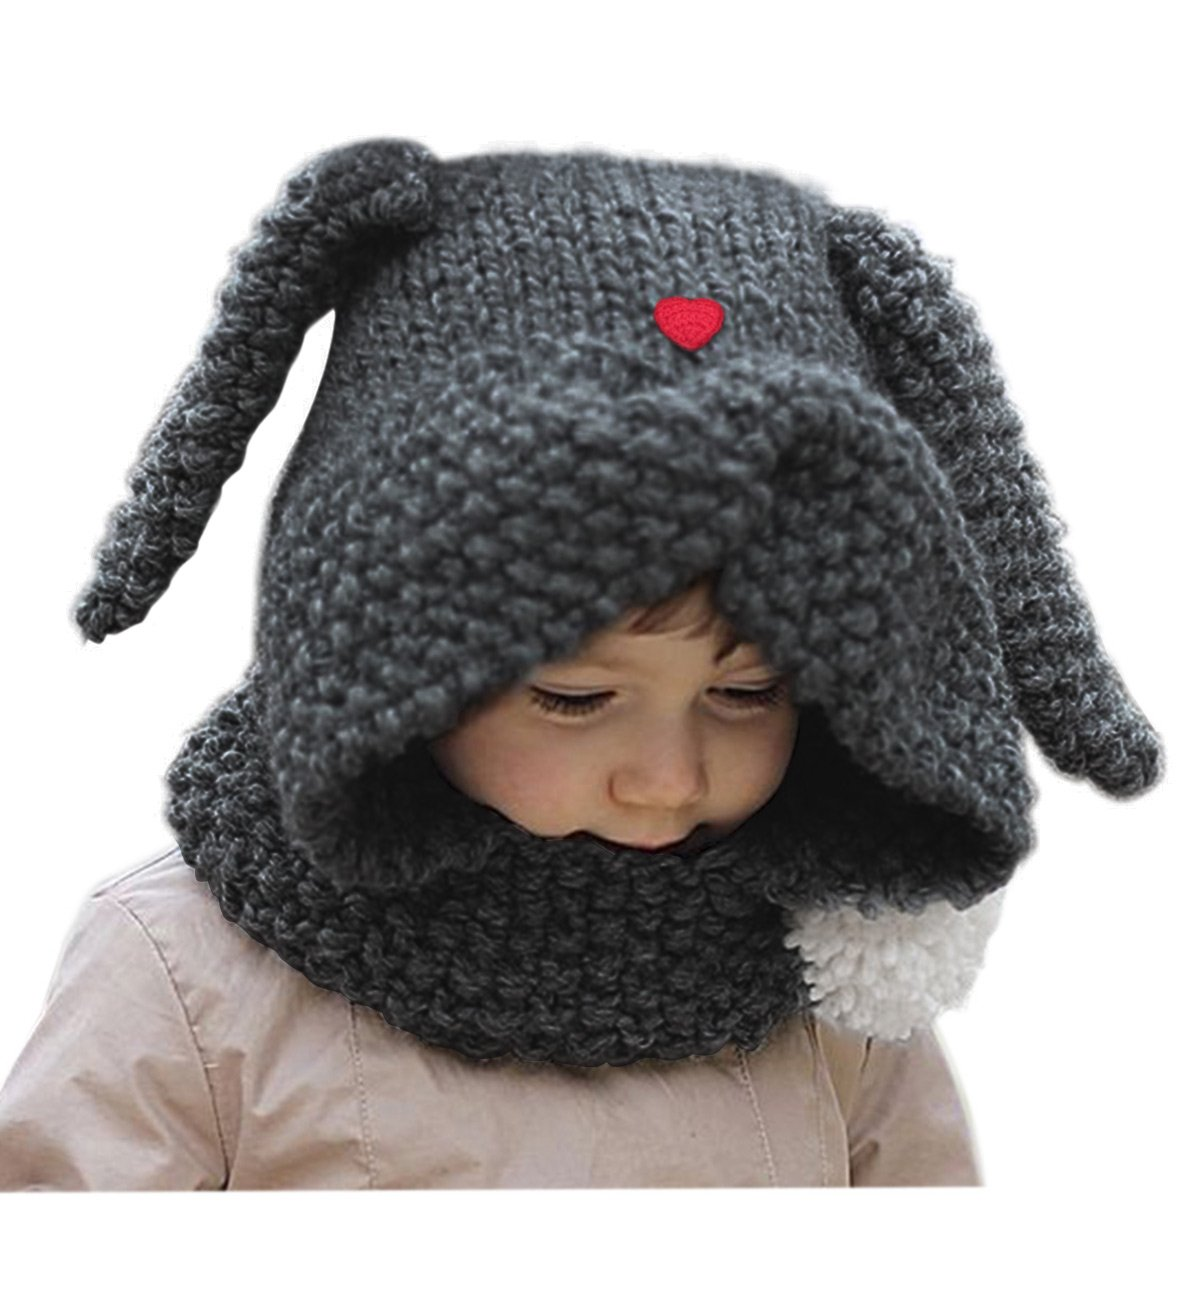 410106144fa Sumolux Girls Kids Warm Animal Hats Knitted Bunny Ear Coif Hood Scarf  Beanies for Winter